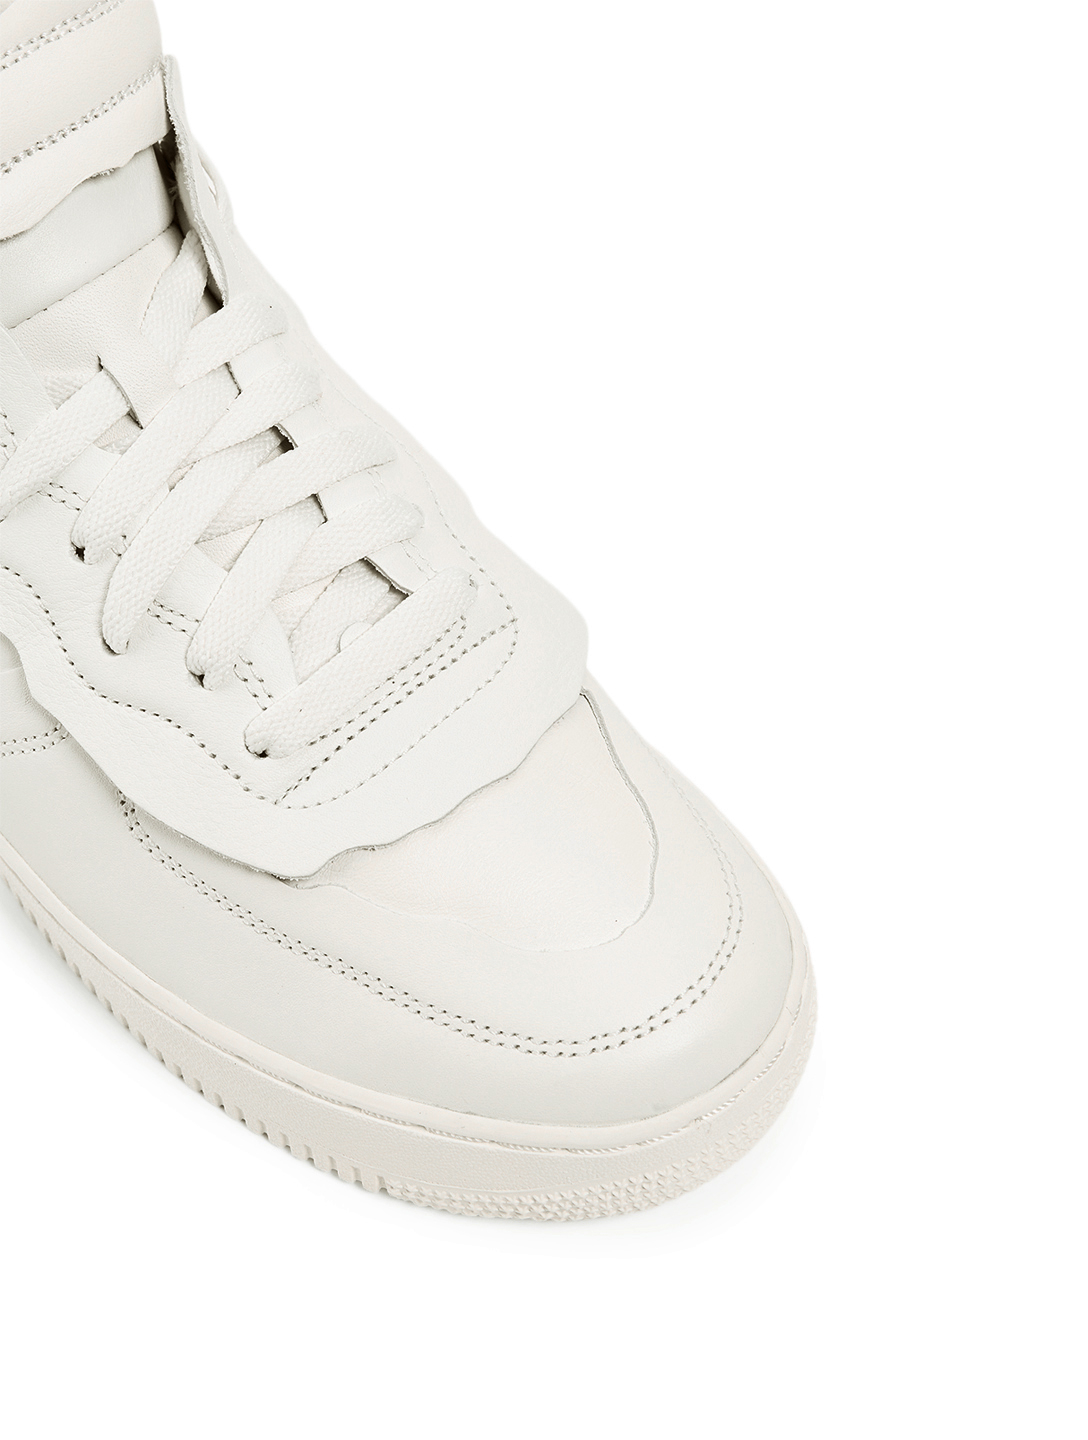 COMME DES GARÇONS X NIKE Men's CDG x NIKE Cut Off Air Force 1 Leather Sneakers Men's White